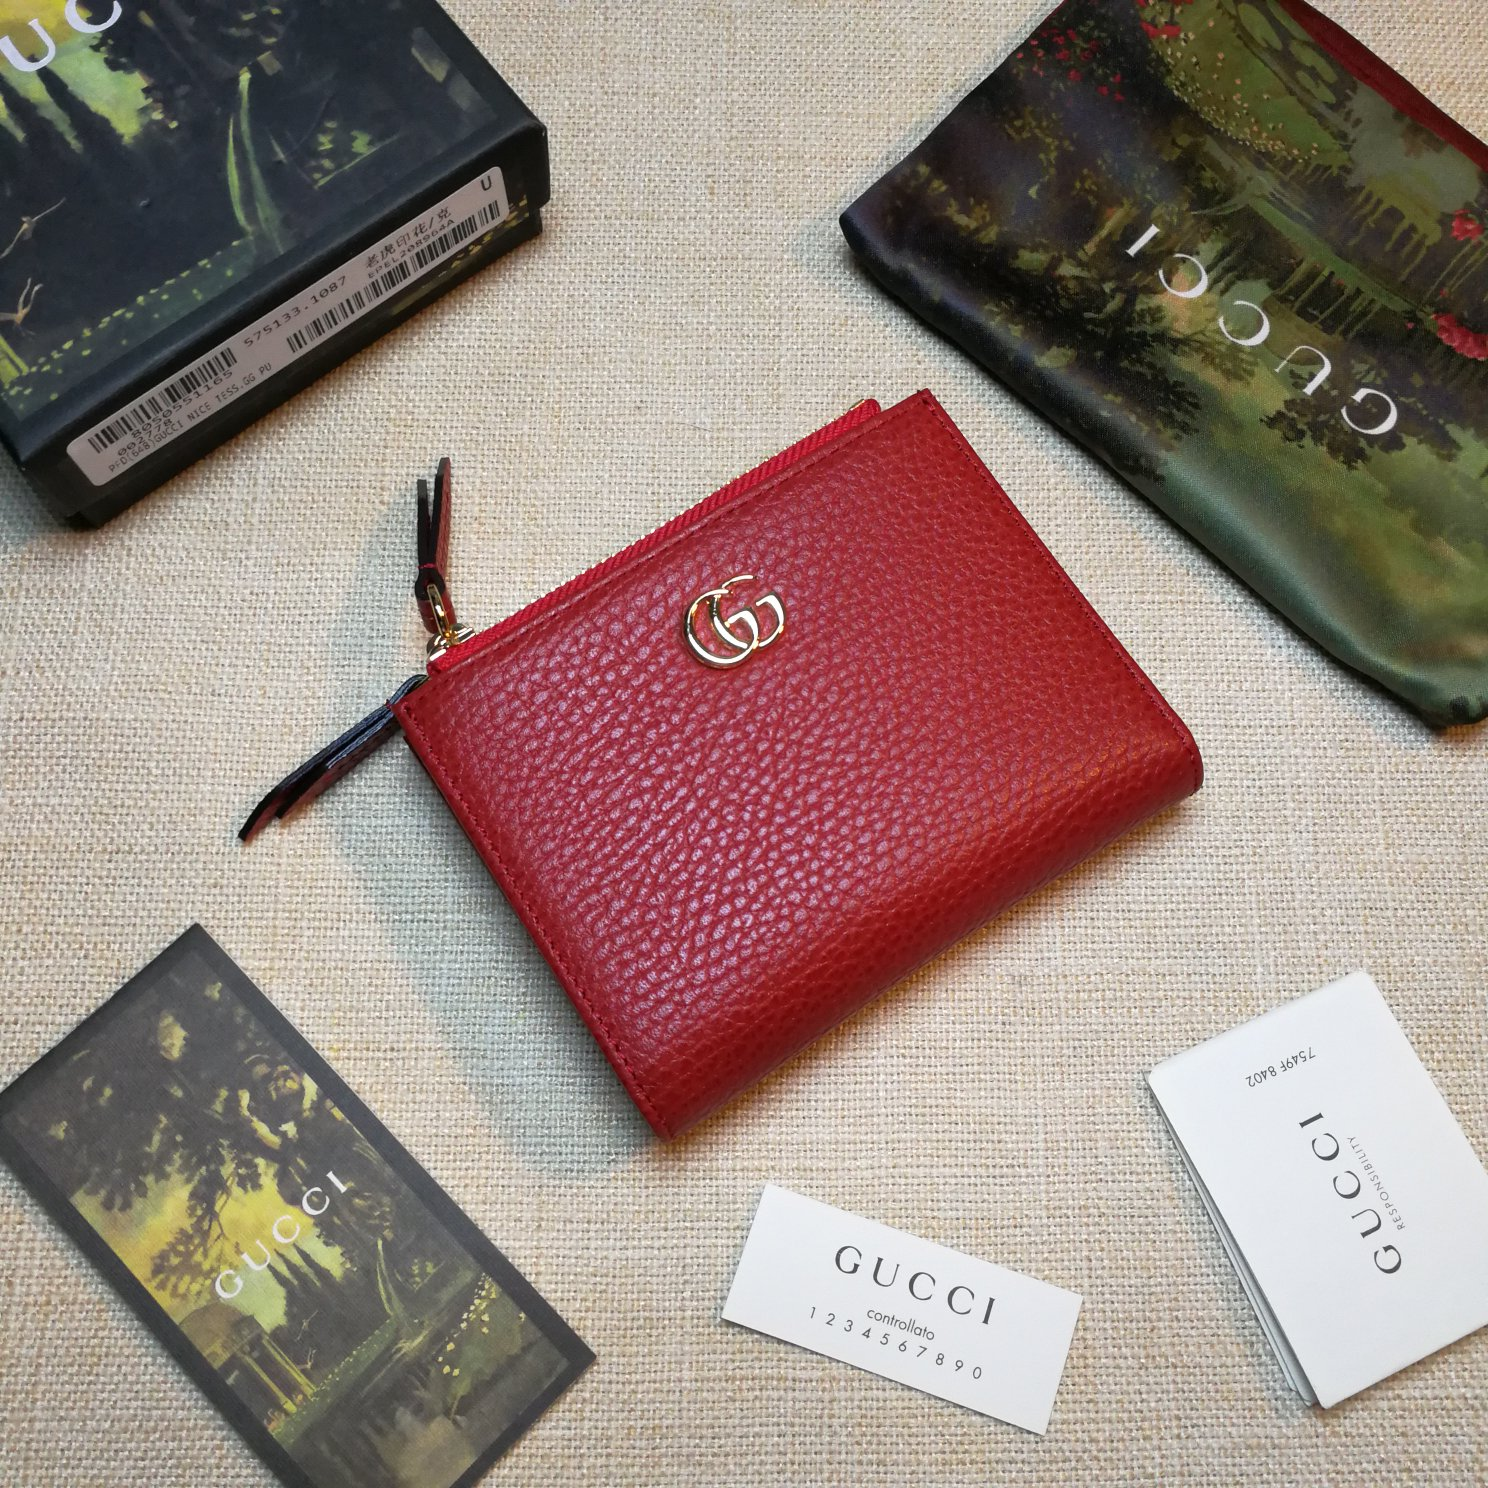 Copy Gucci 474747 GG Marmont Leather Wallet Red